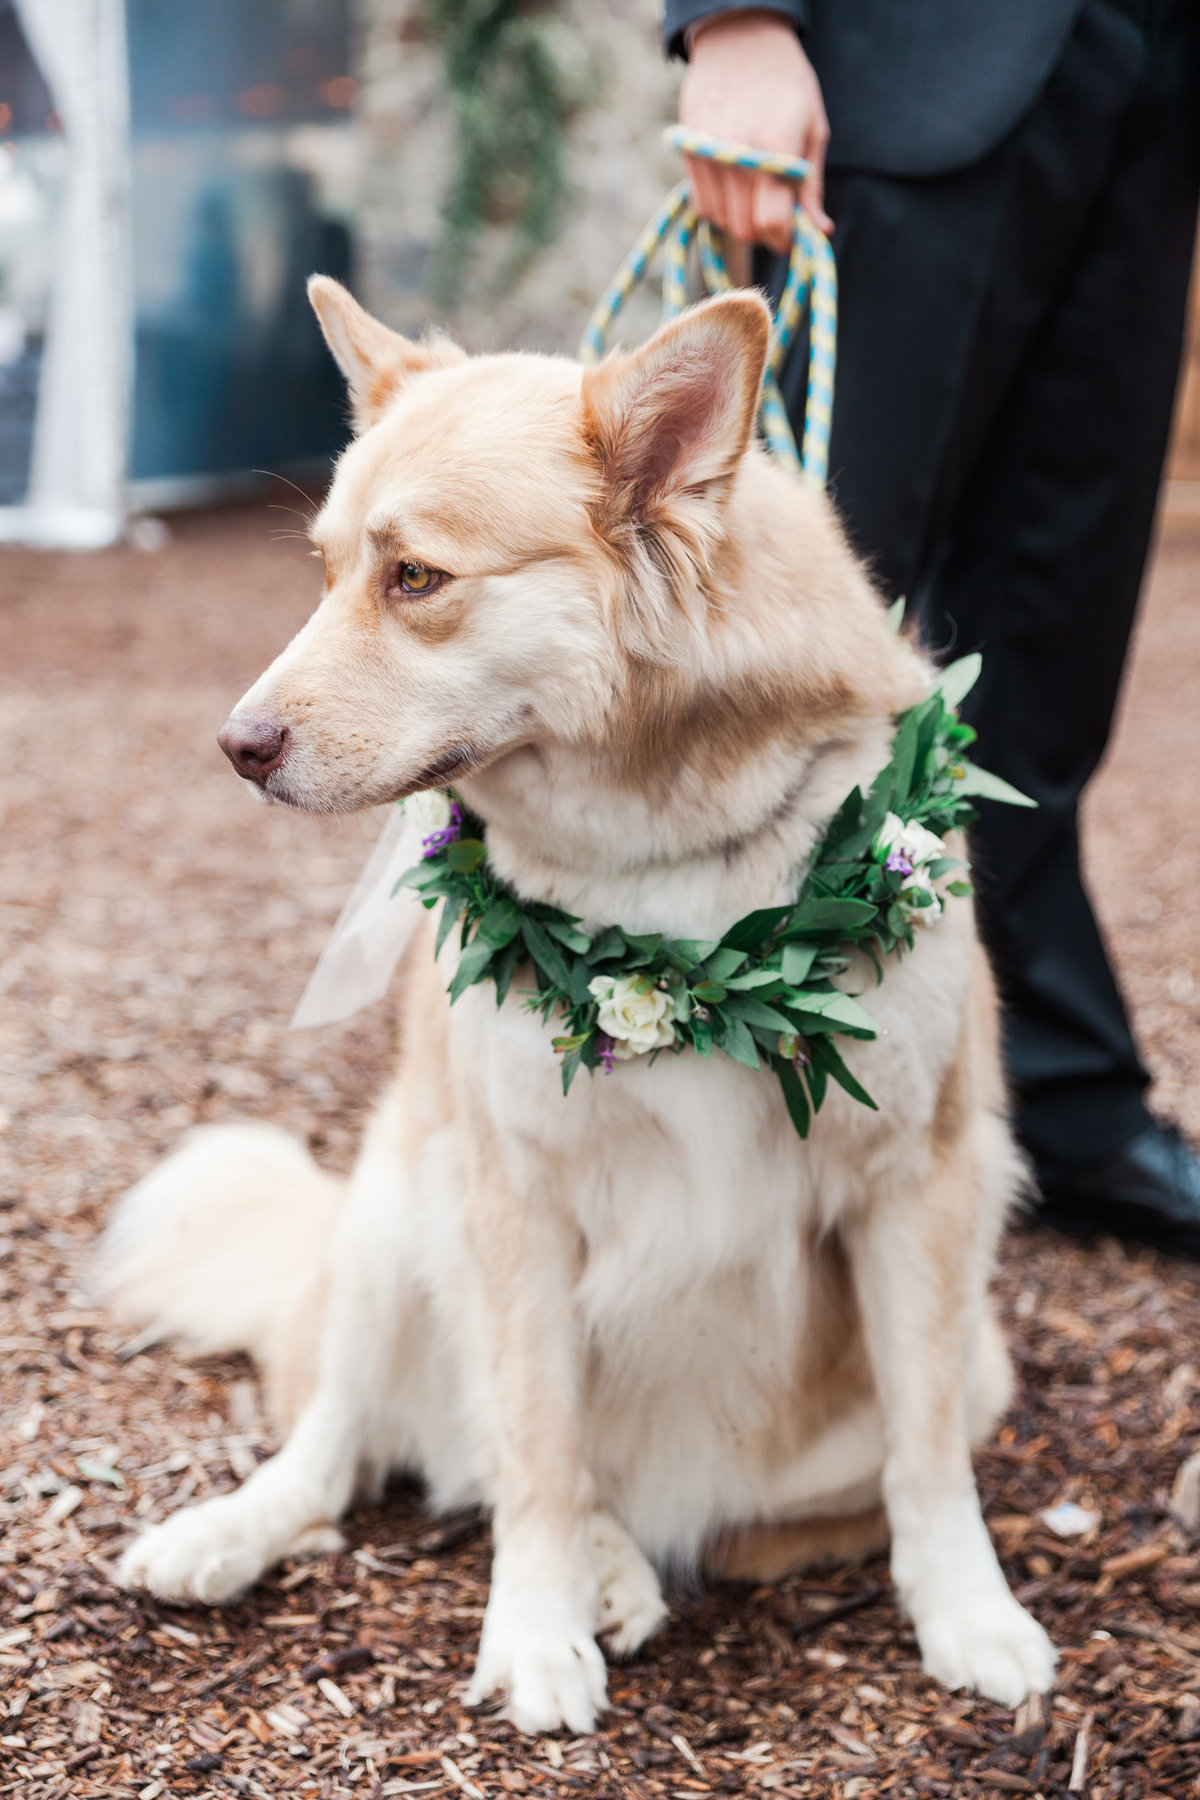 Palihouse_Cielo_Farms_Malibu_Rustic_Wedding_Valorie_Darling_Photography - 75 of 107